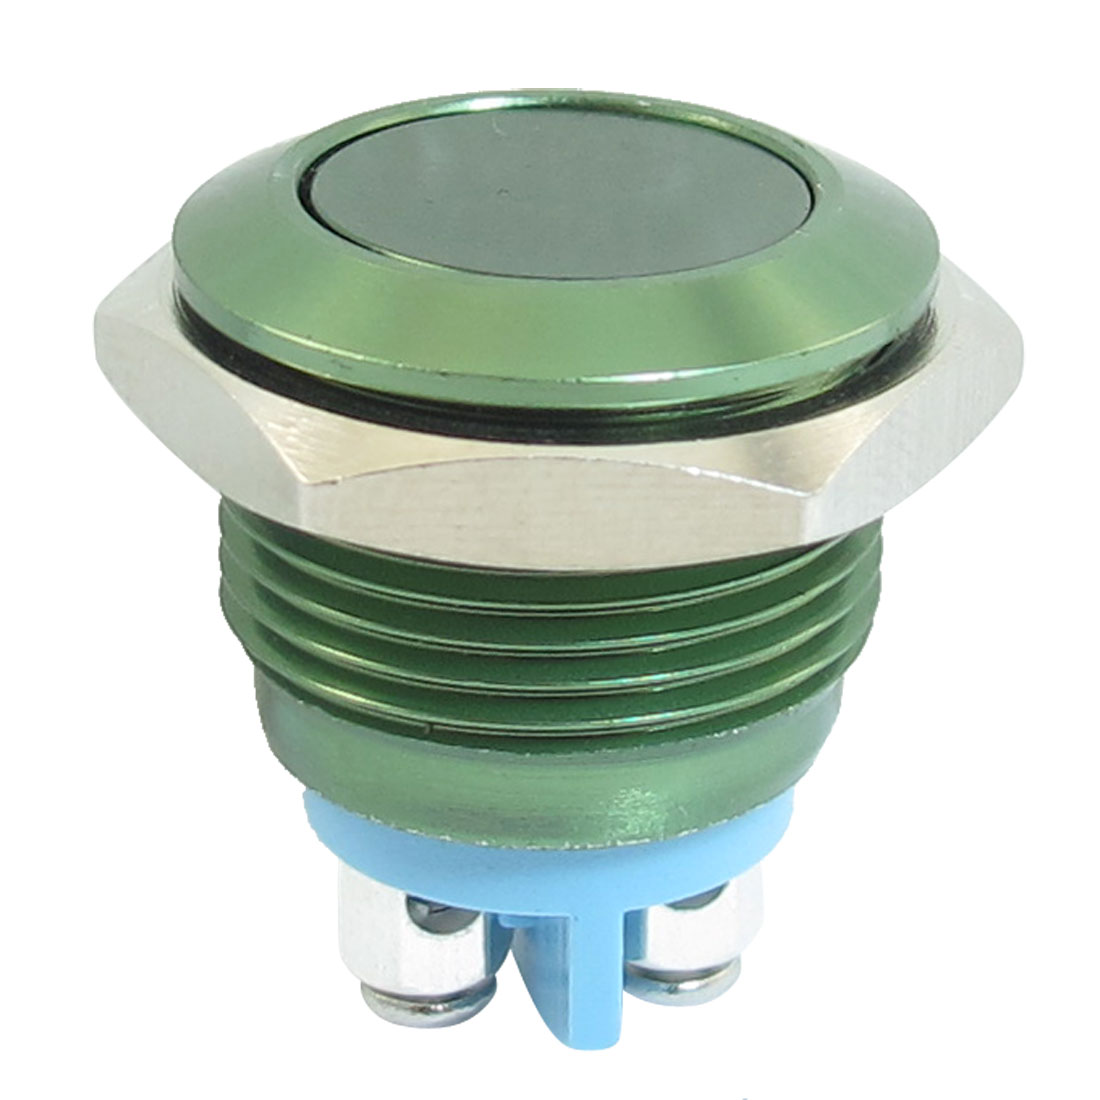 16mm Flush Mounted Momentary SPST Green Stainless Steel Round Push Button Switch